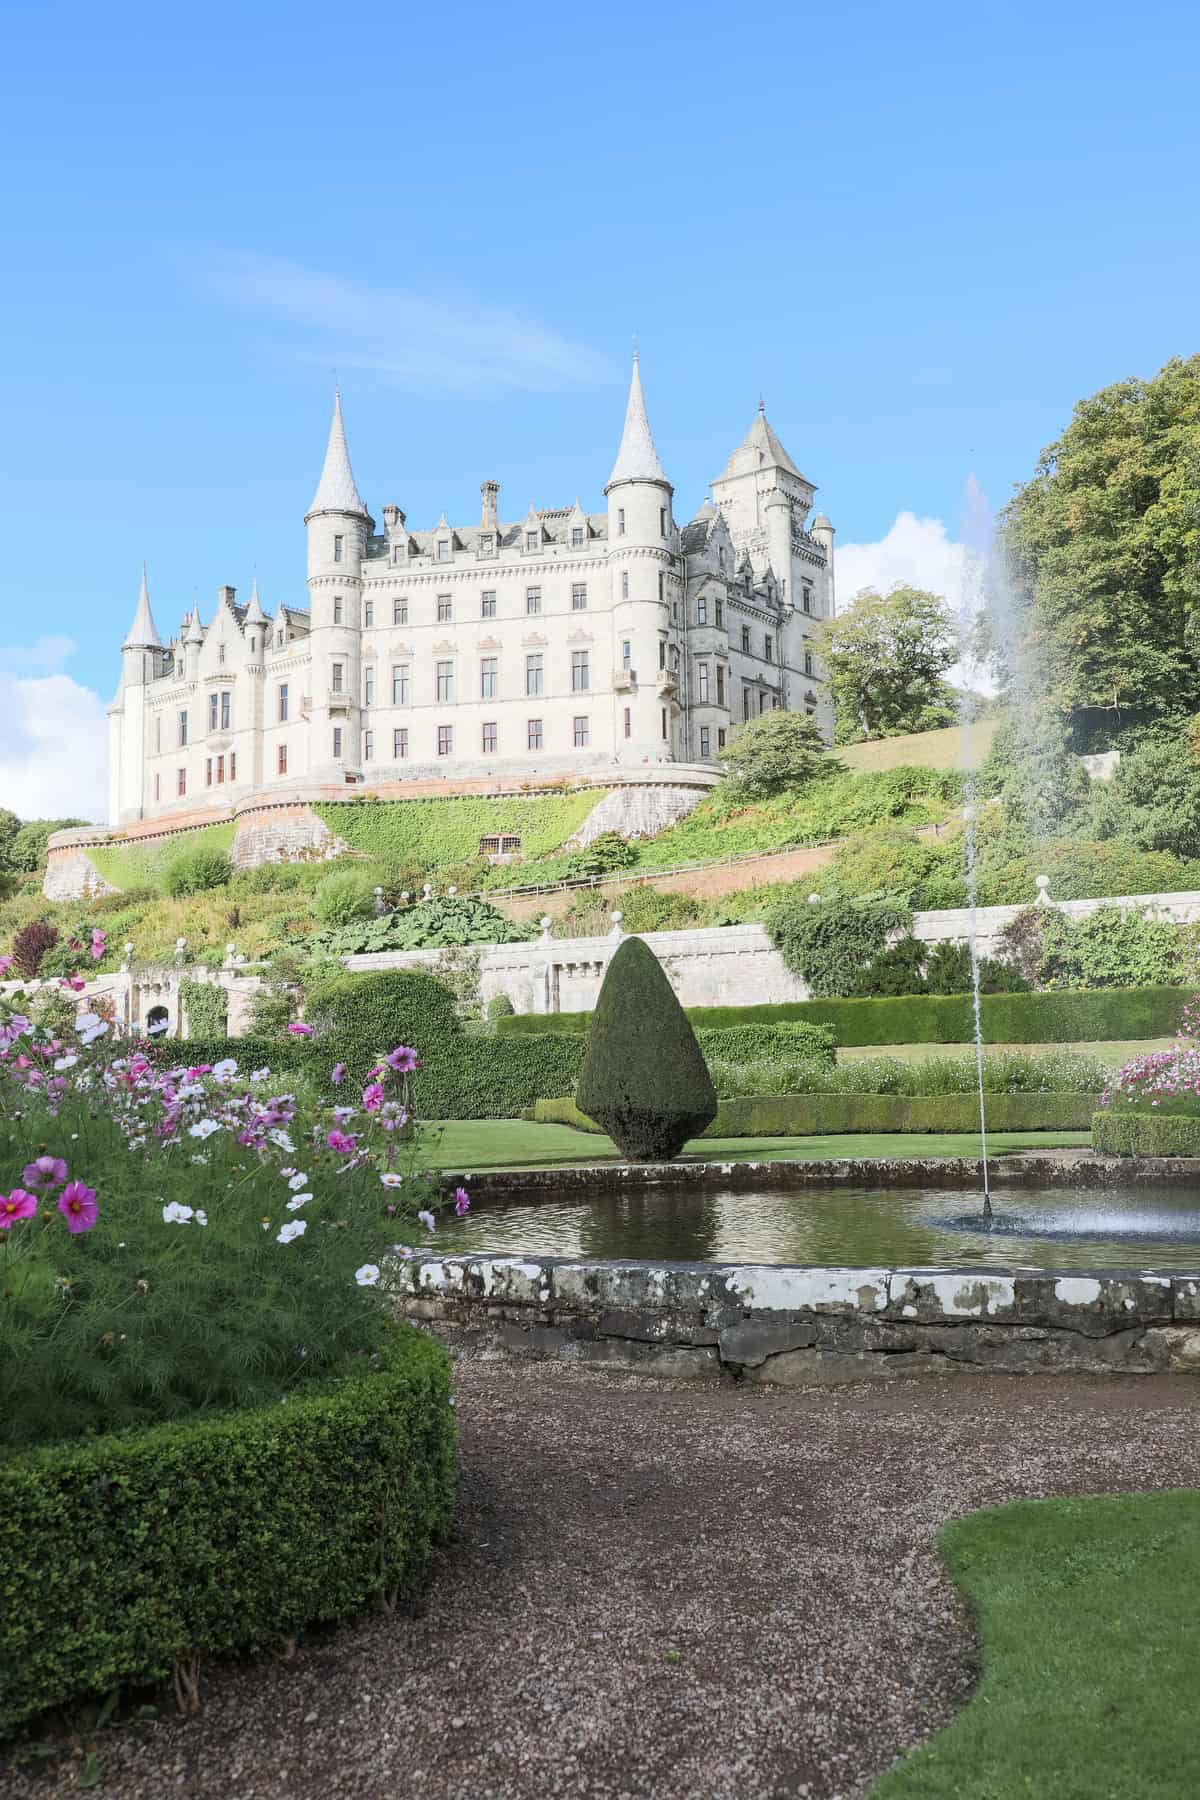 Water feature in front of Dunrobin Castle